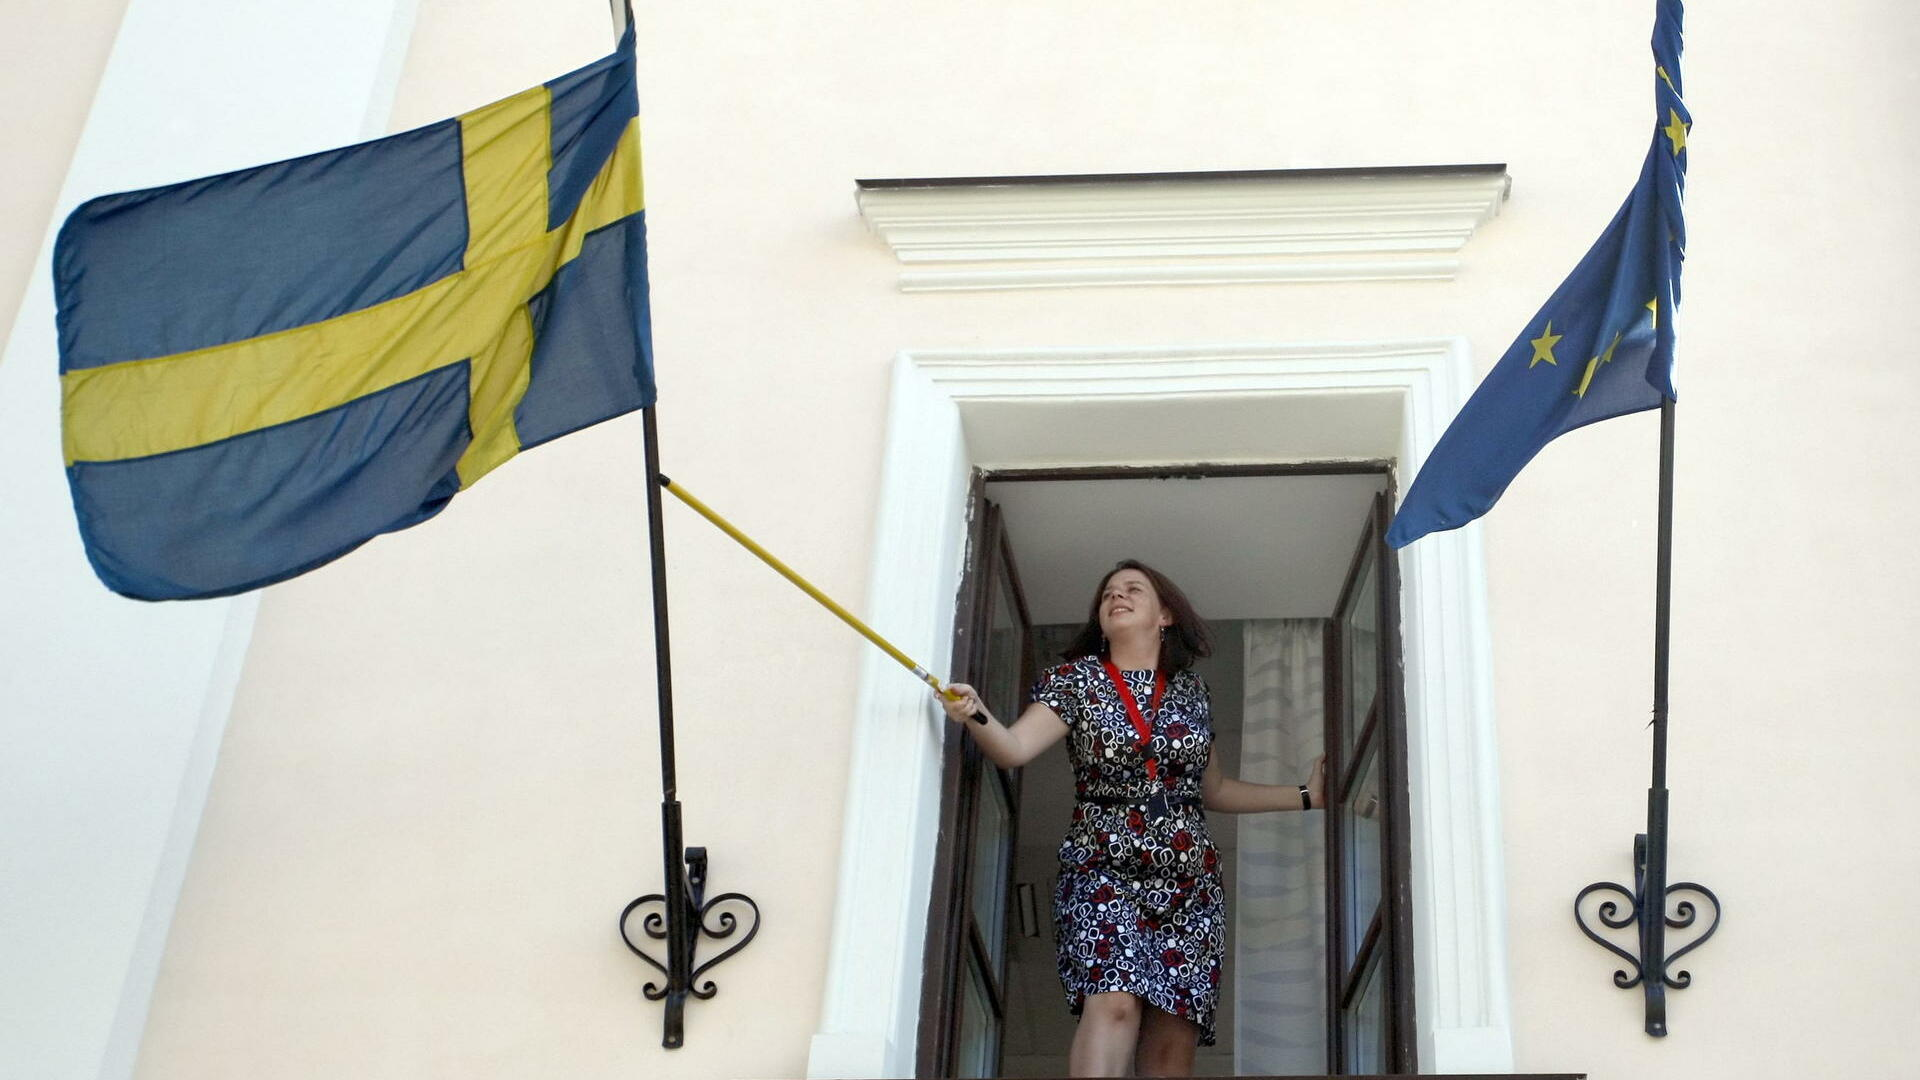 An Swedish embassy employee adjusts a Swedish Quelle: dpa